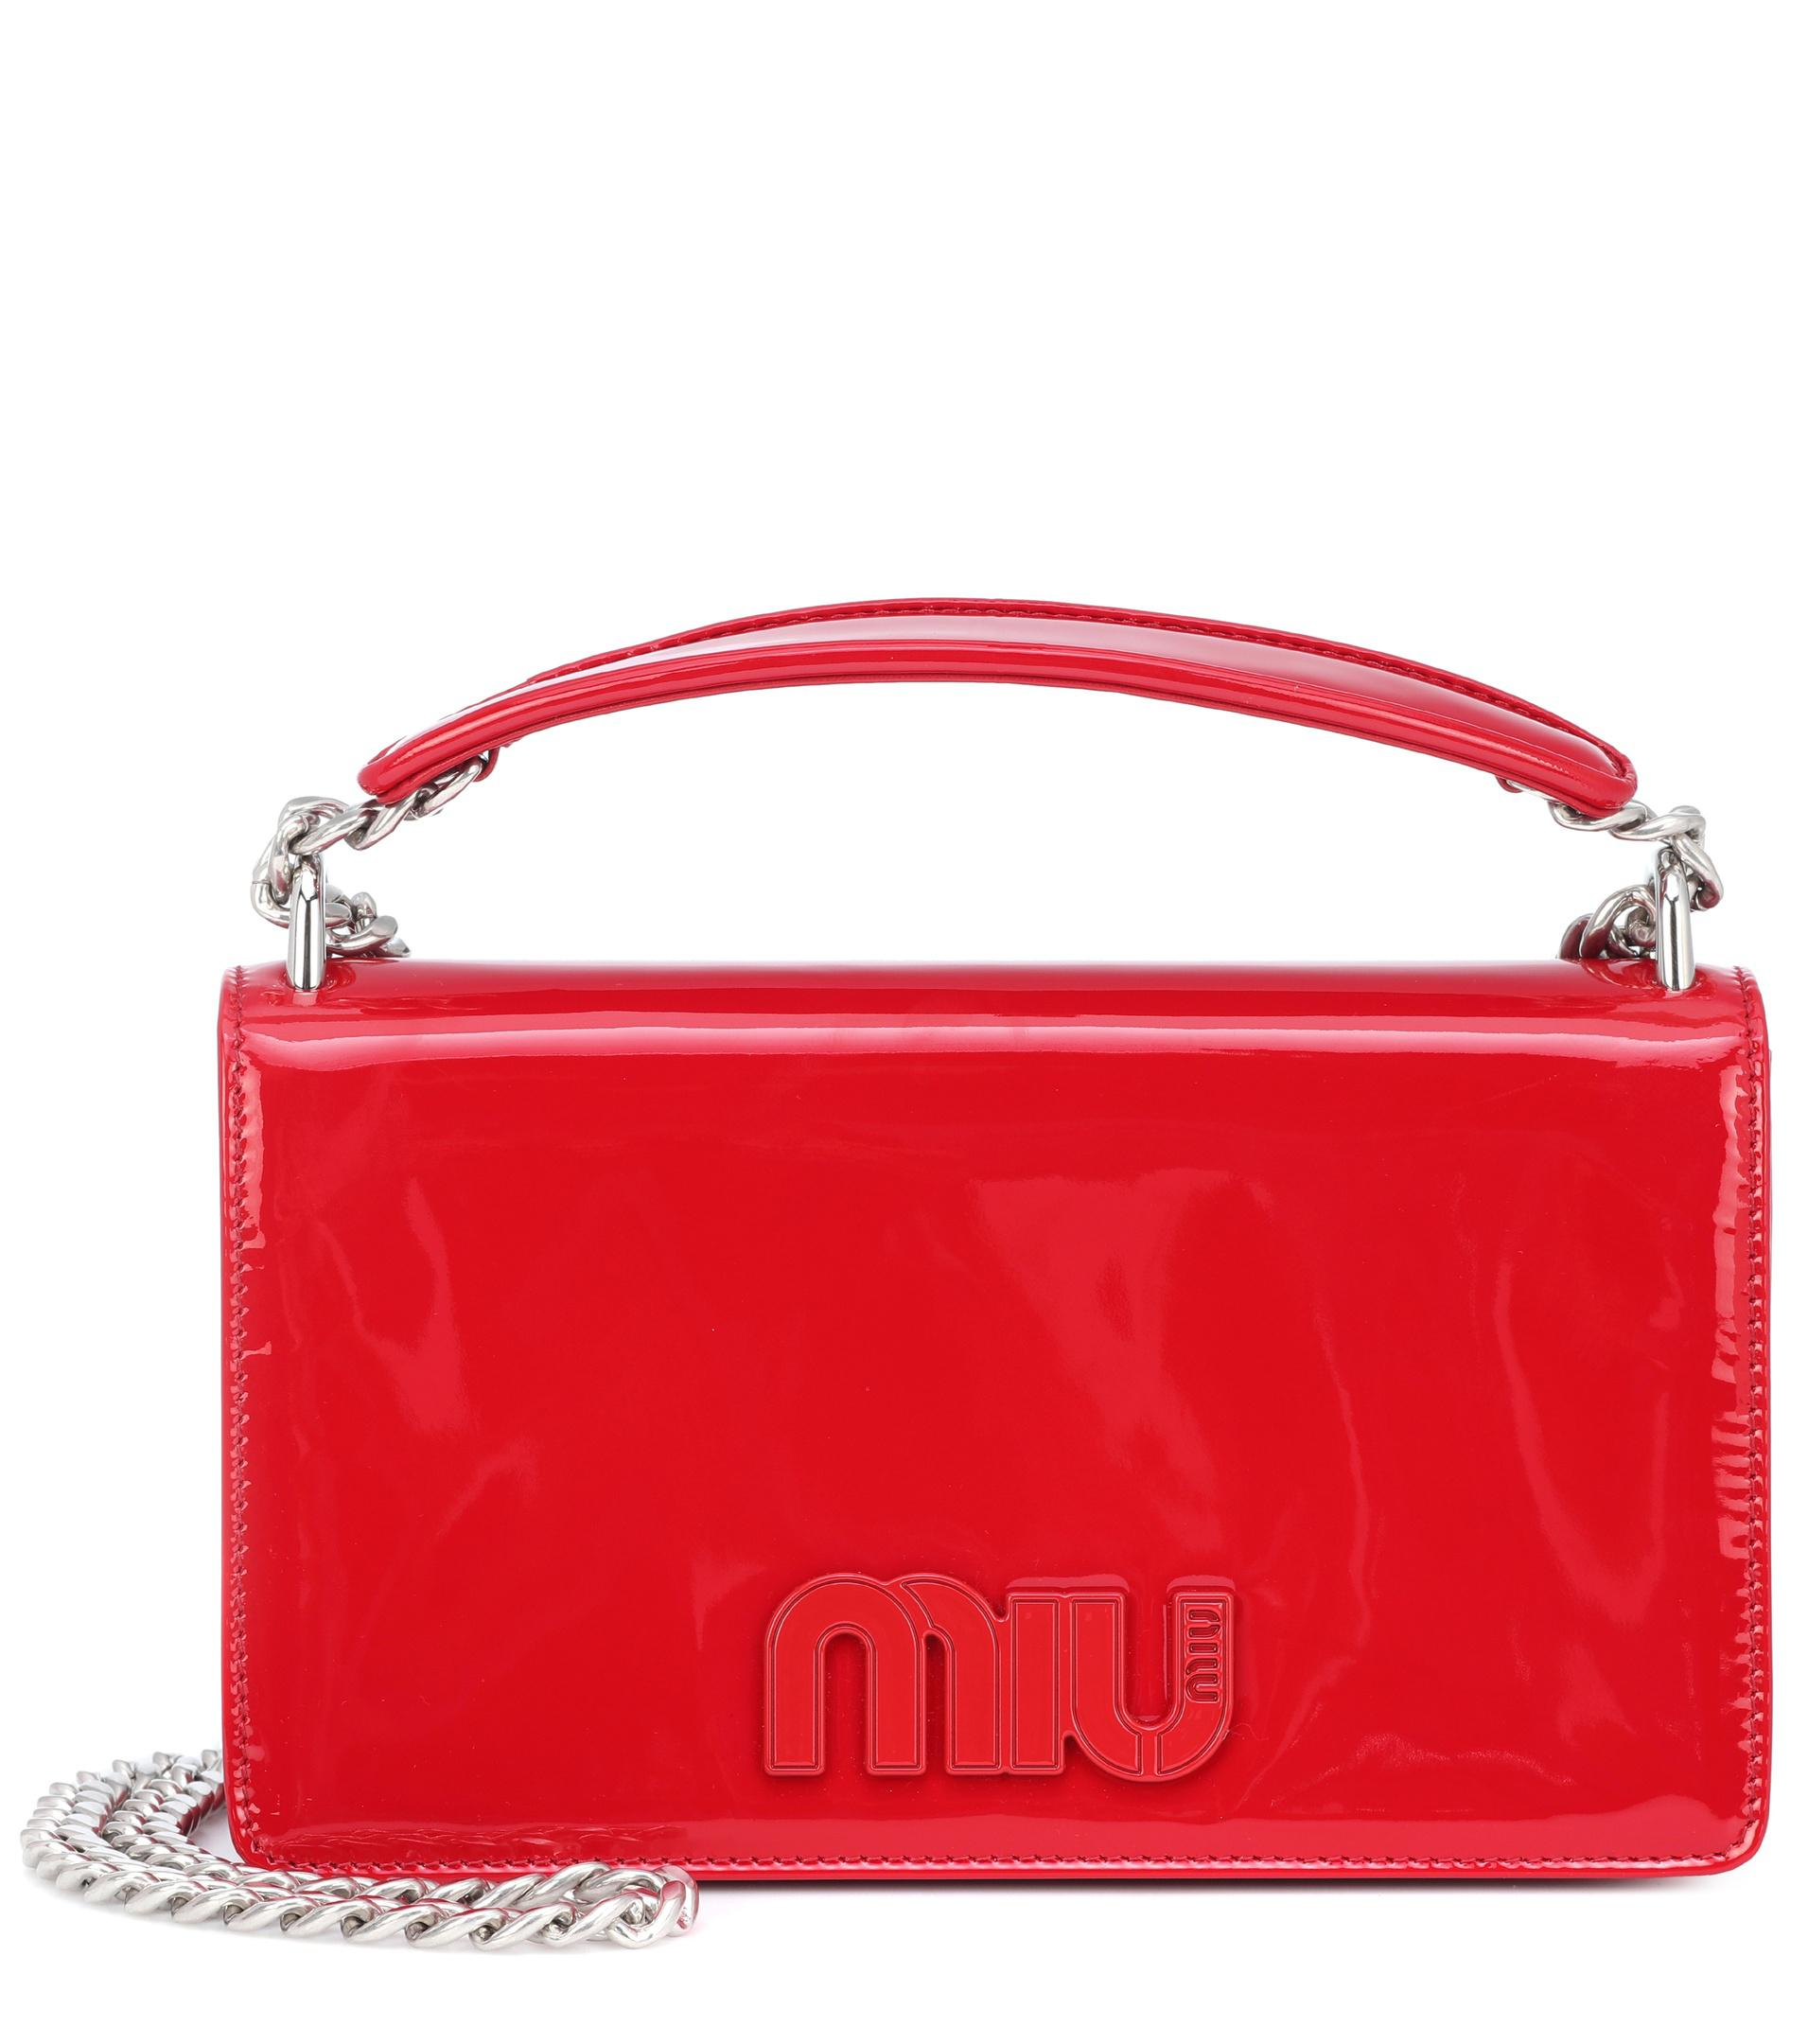 c77d2db96cd2 Miu Miu Patent Leather Shoulder Bag in Red - Lyst